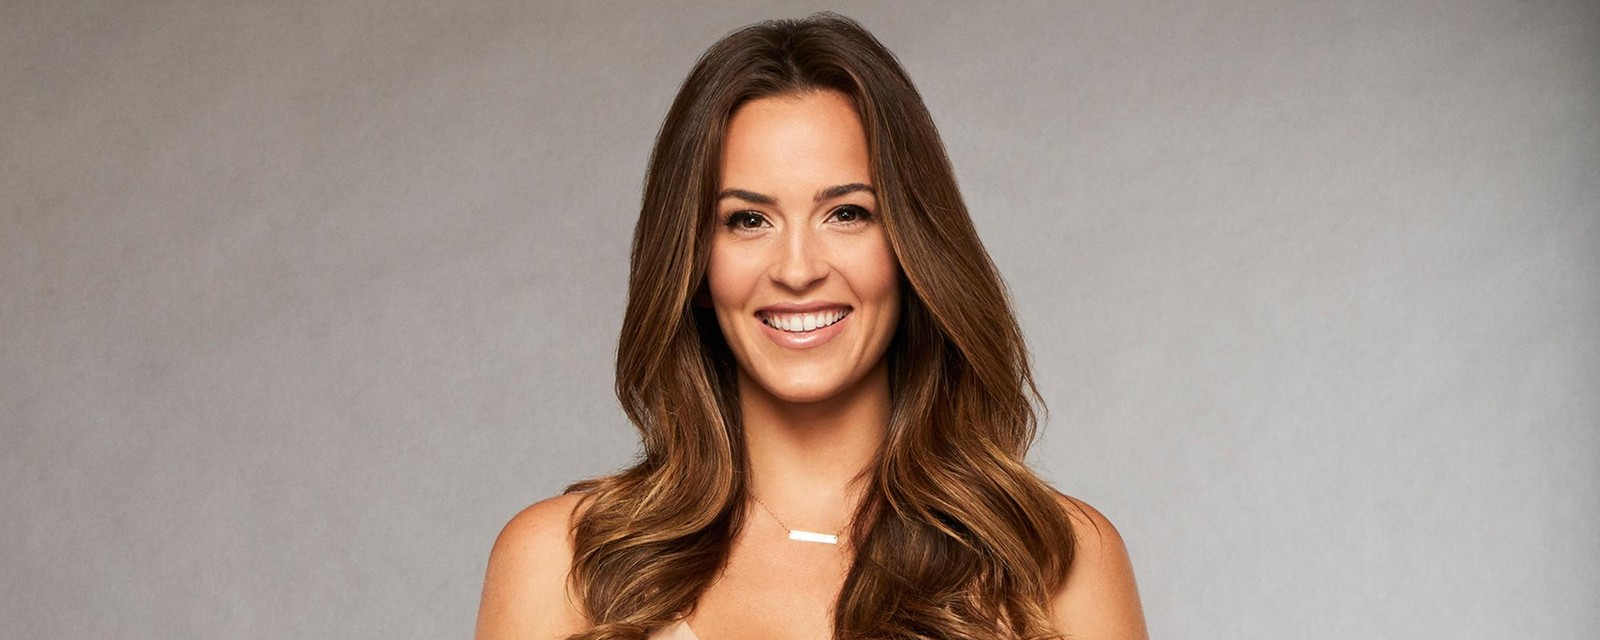 Caroline from 'The Bachelor' Season 22